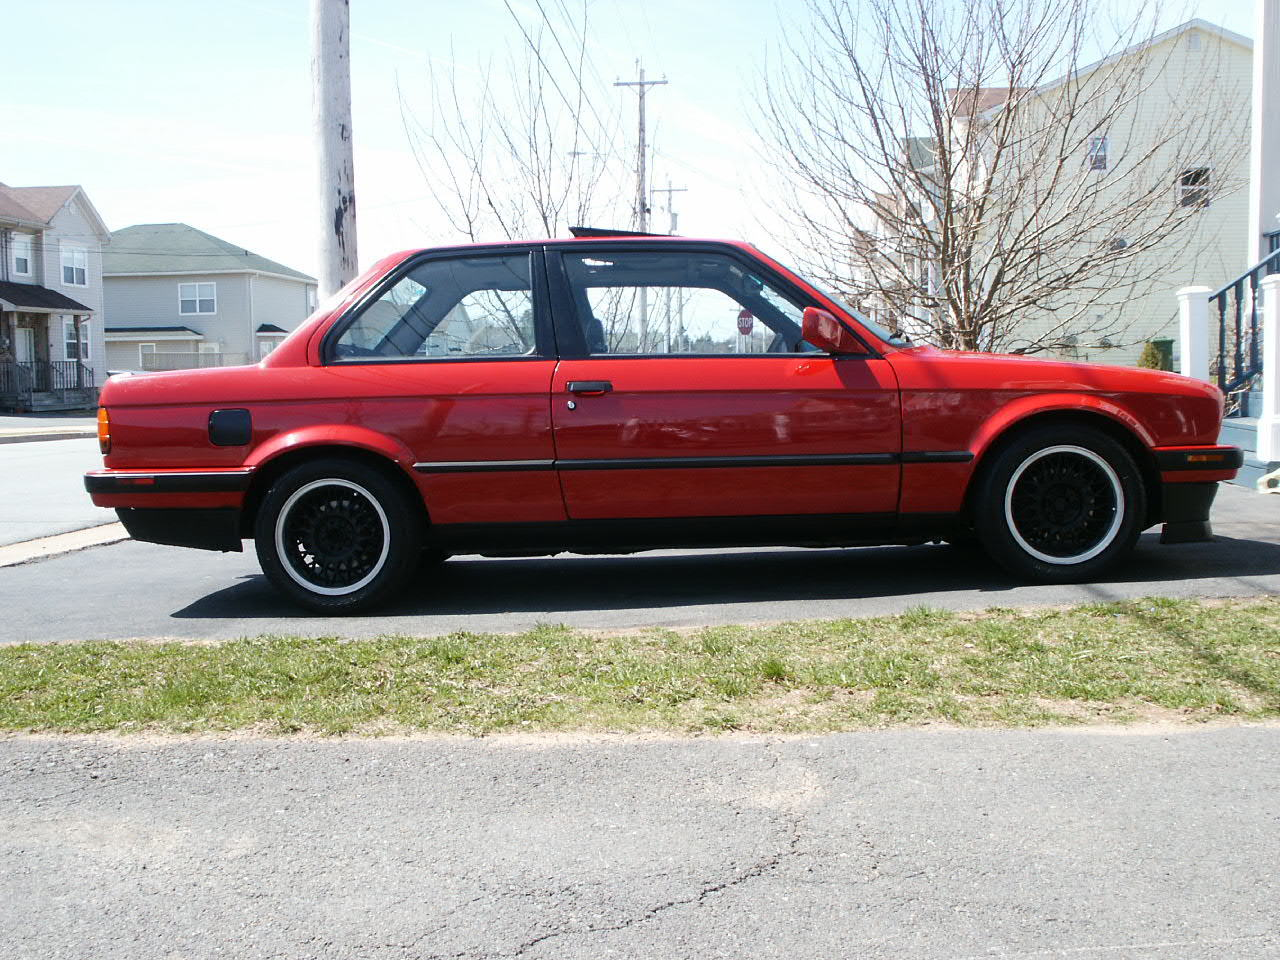 jreinhard's 1989 BMW 3 Series